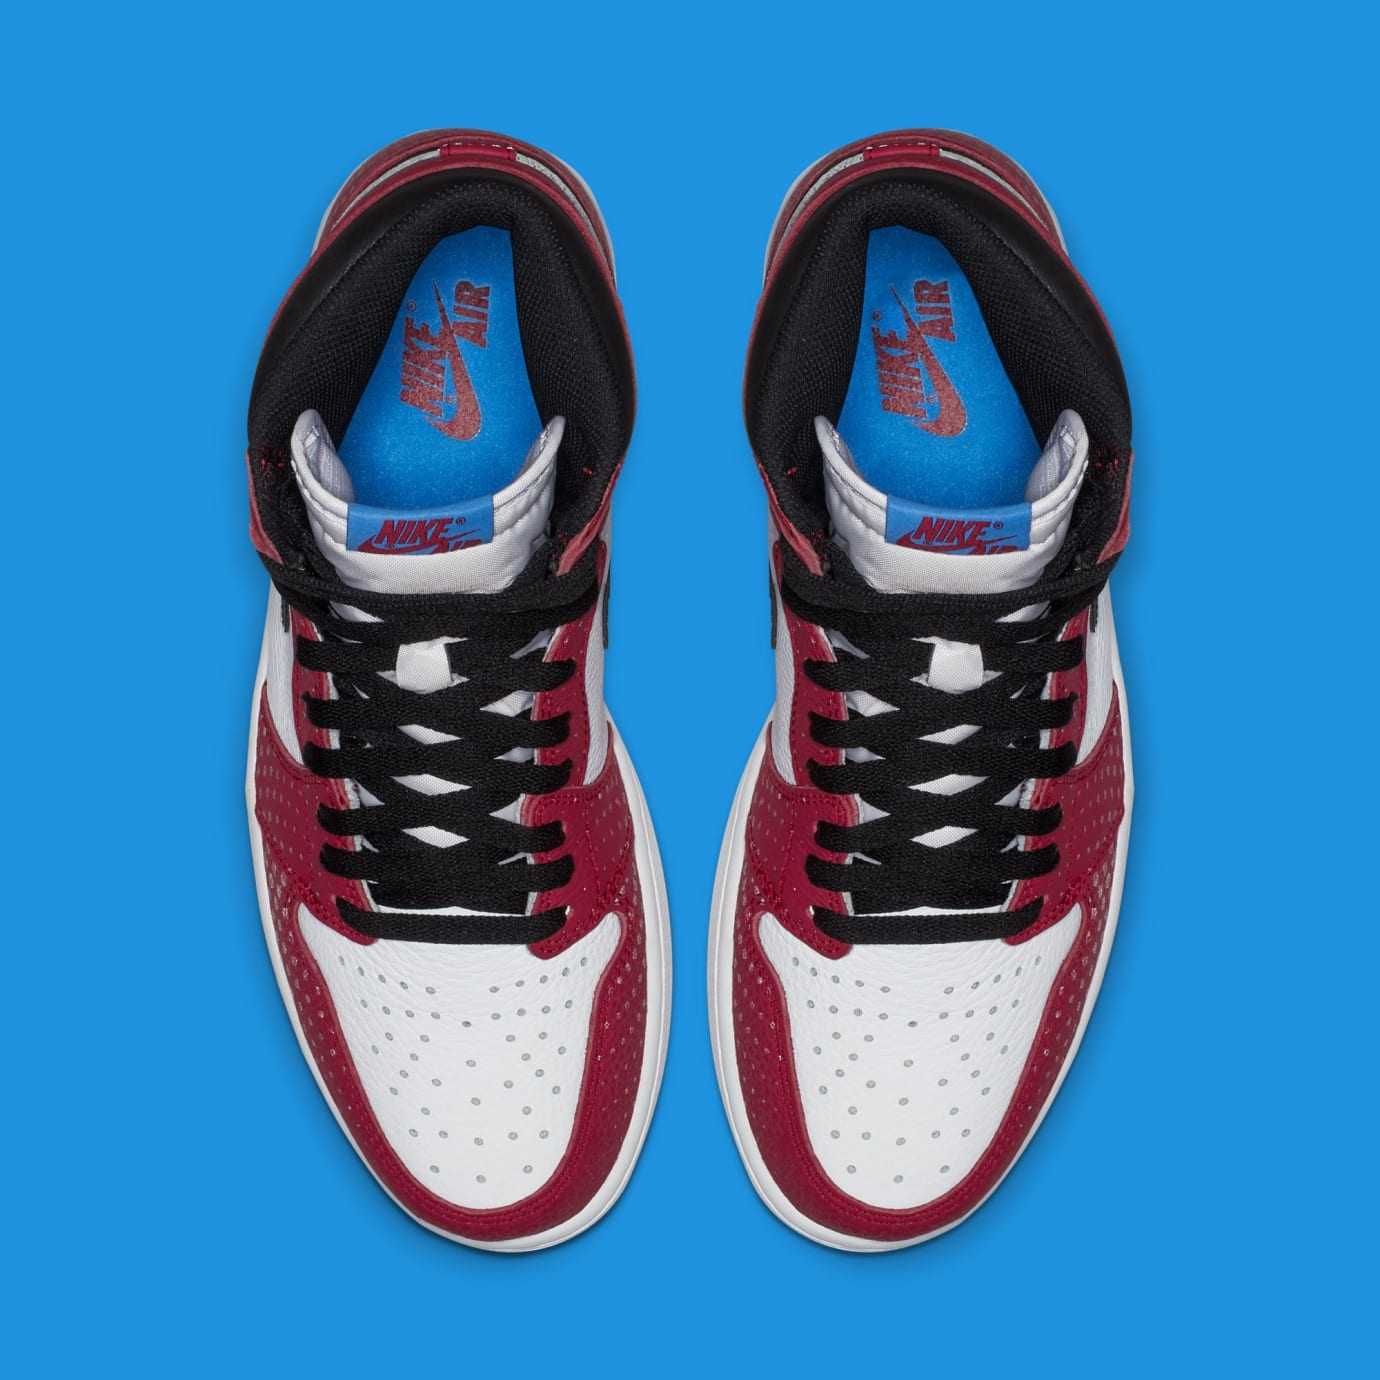 Air Jordan 1 'Origin Story' Red/White-Photo Blue-Black 555088-602 (Top)